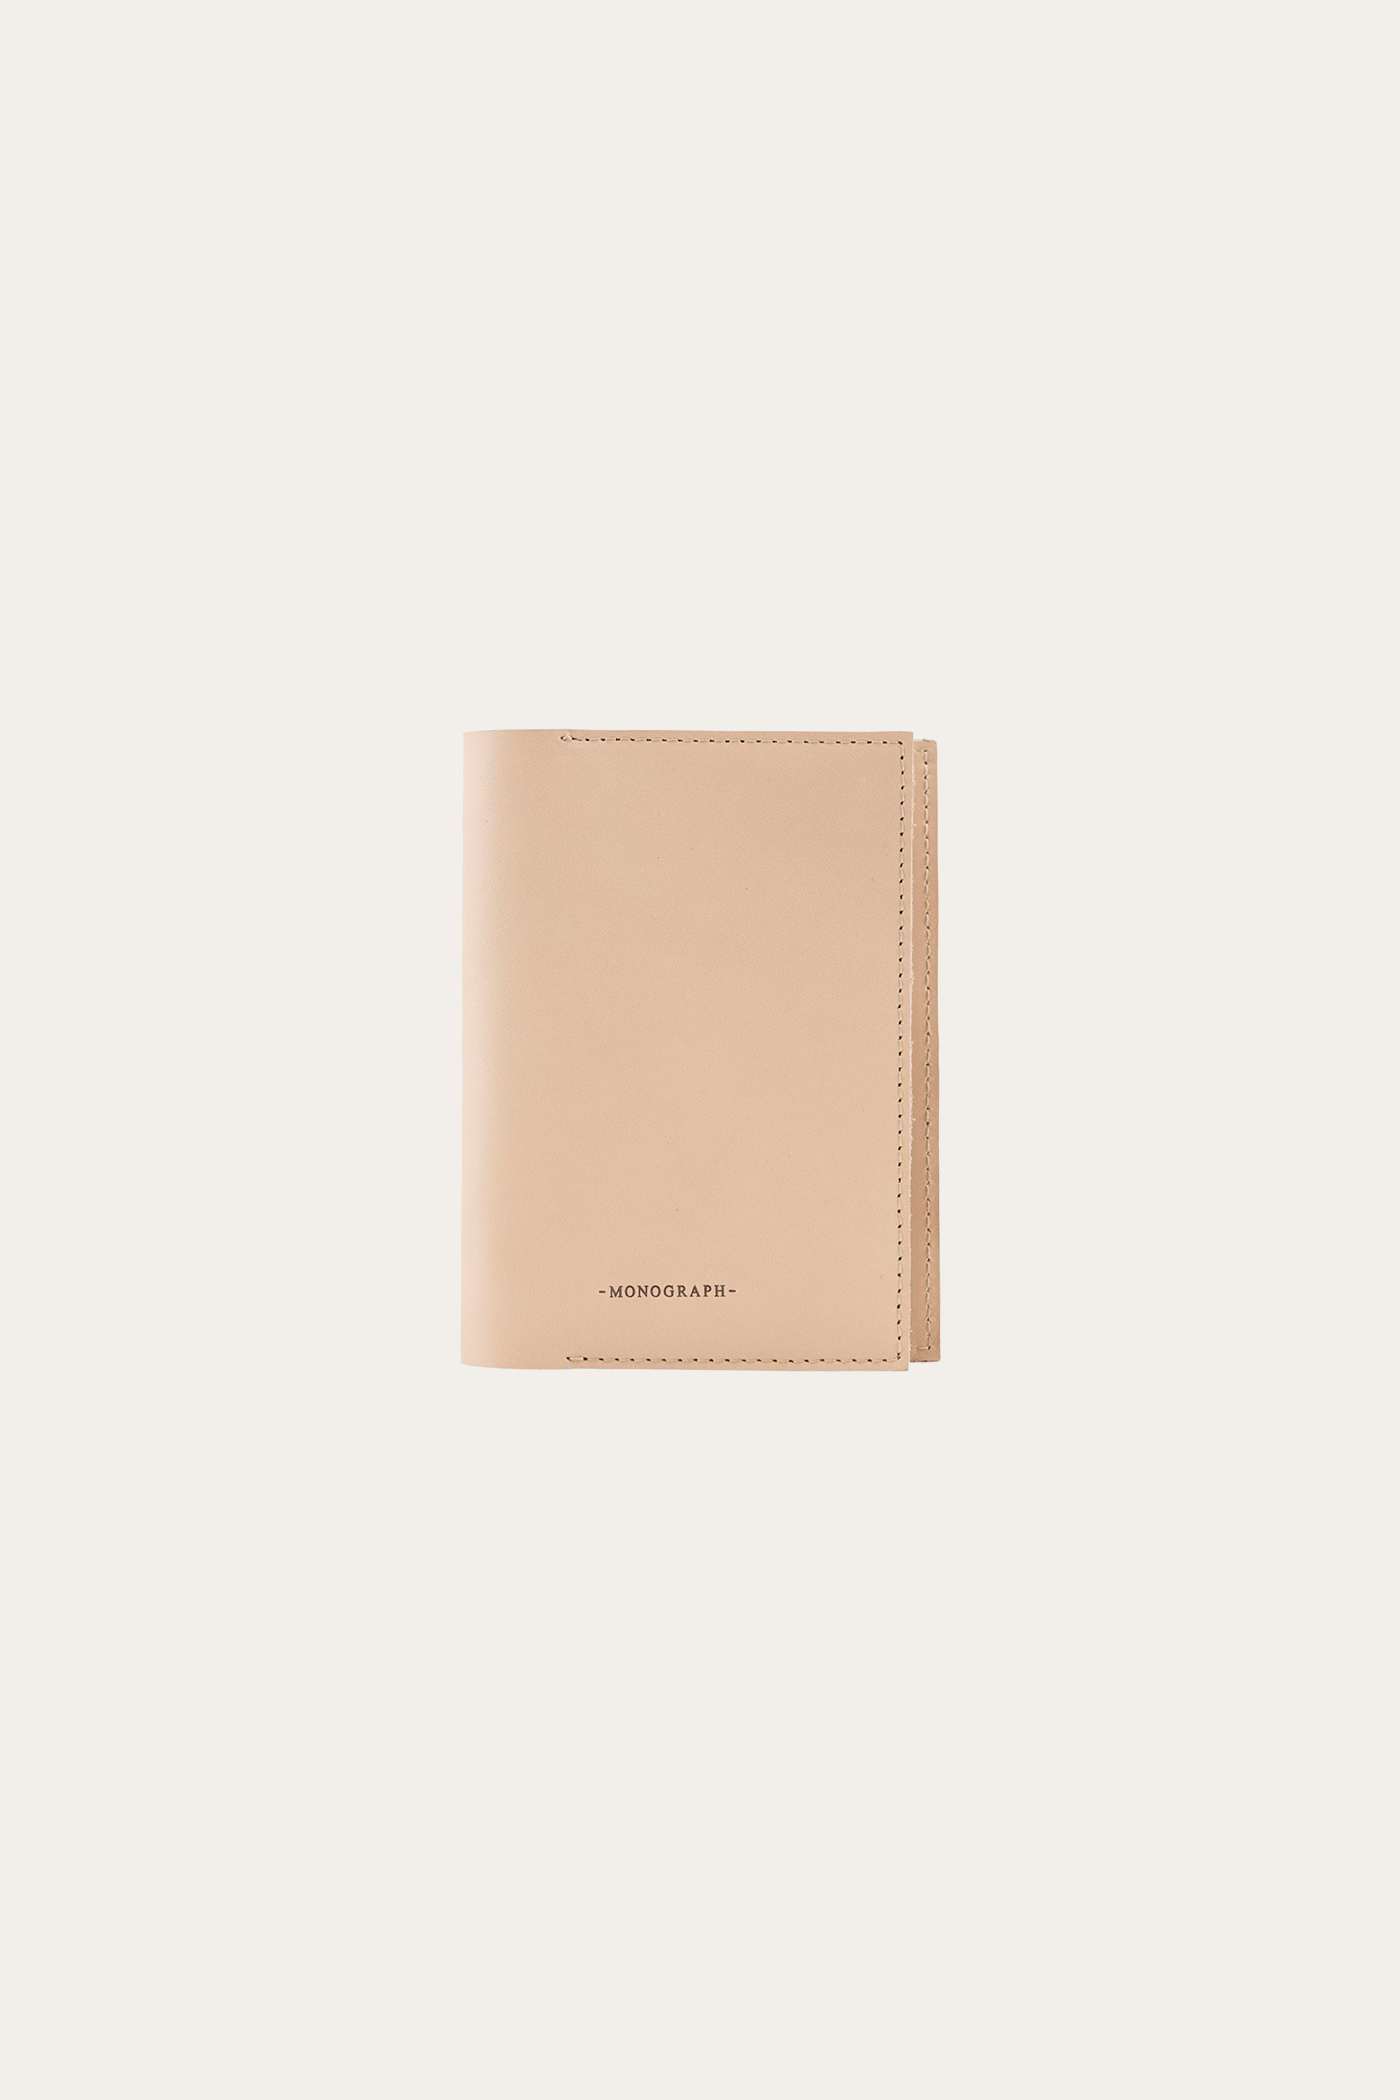 Monograph Passport Holder